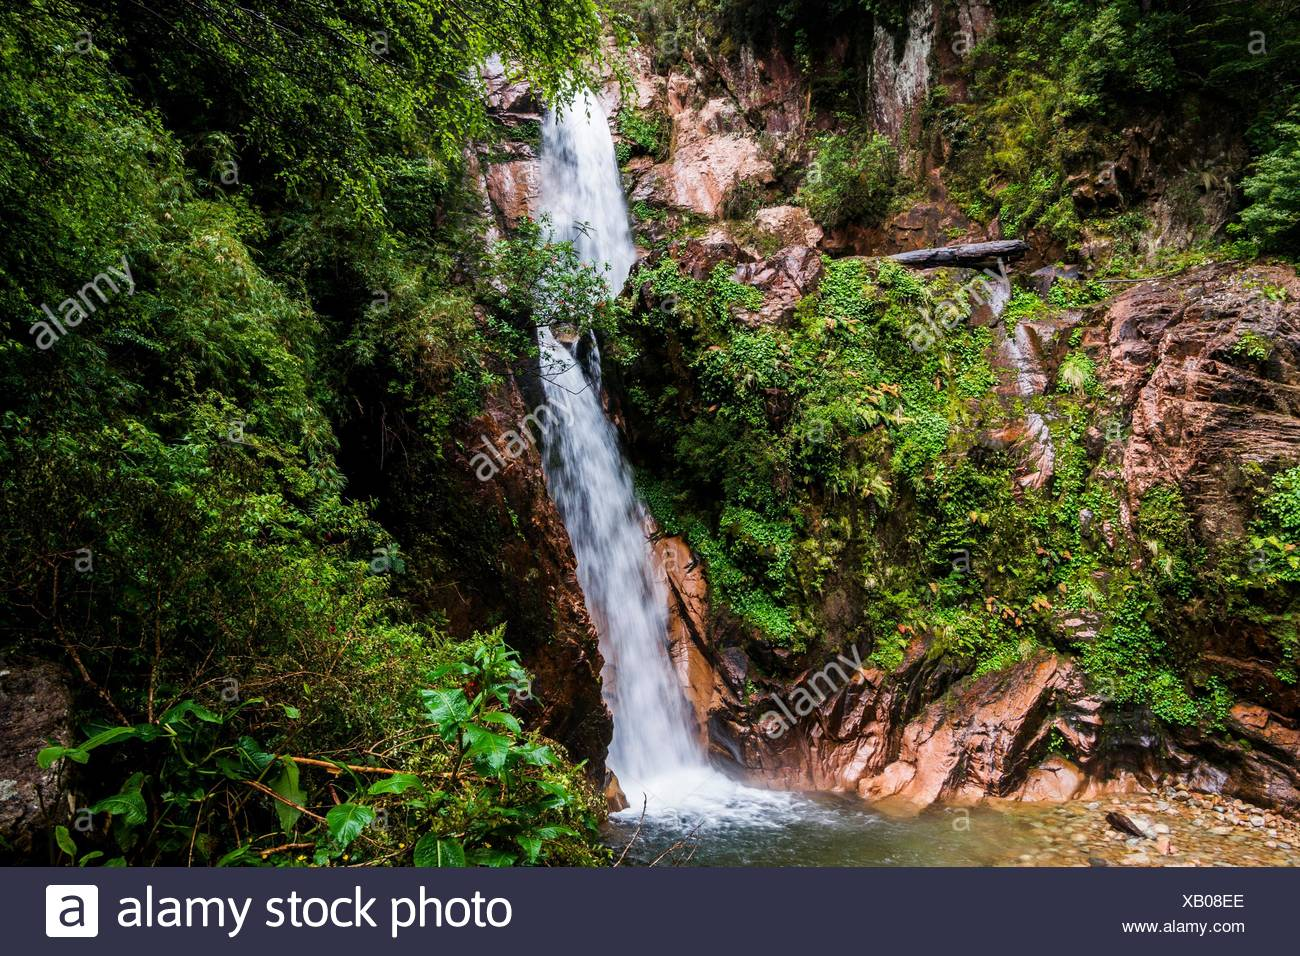 Waterfall of the Virgin (Cascada de la Virgen), Coyhaique and Aysén Regions, Puerto Chacabuco, Patagonia, Chile, South America. - Stock Image